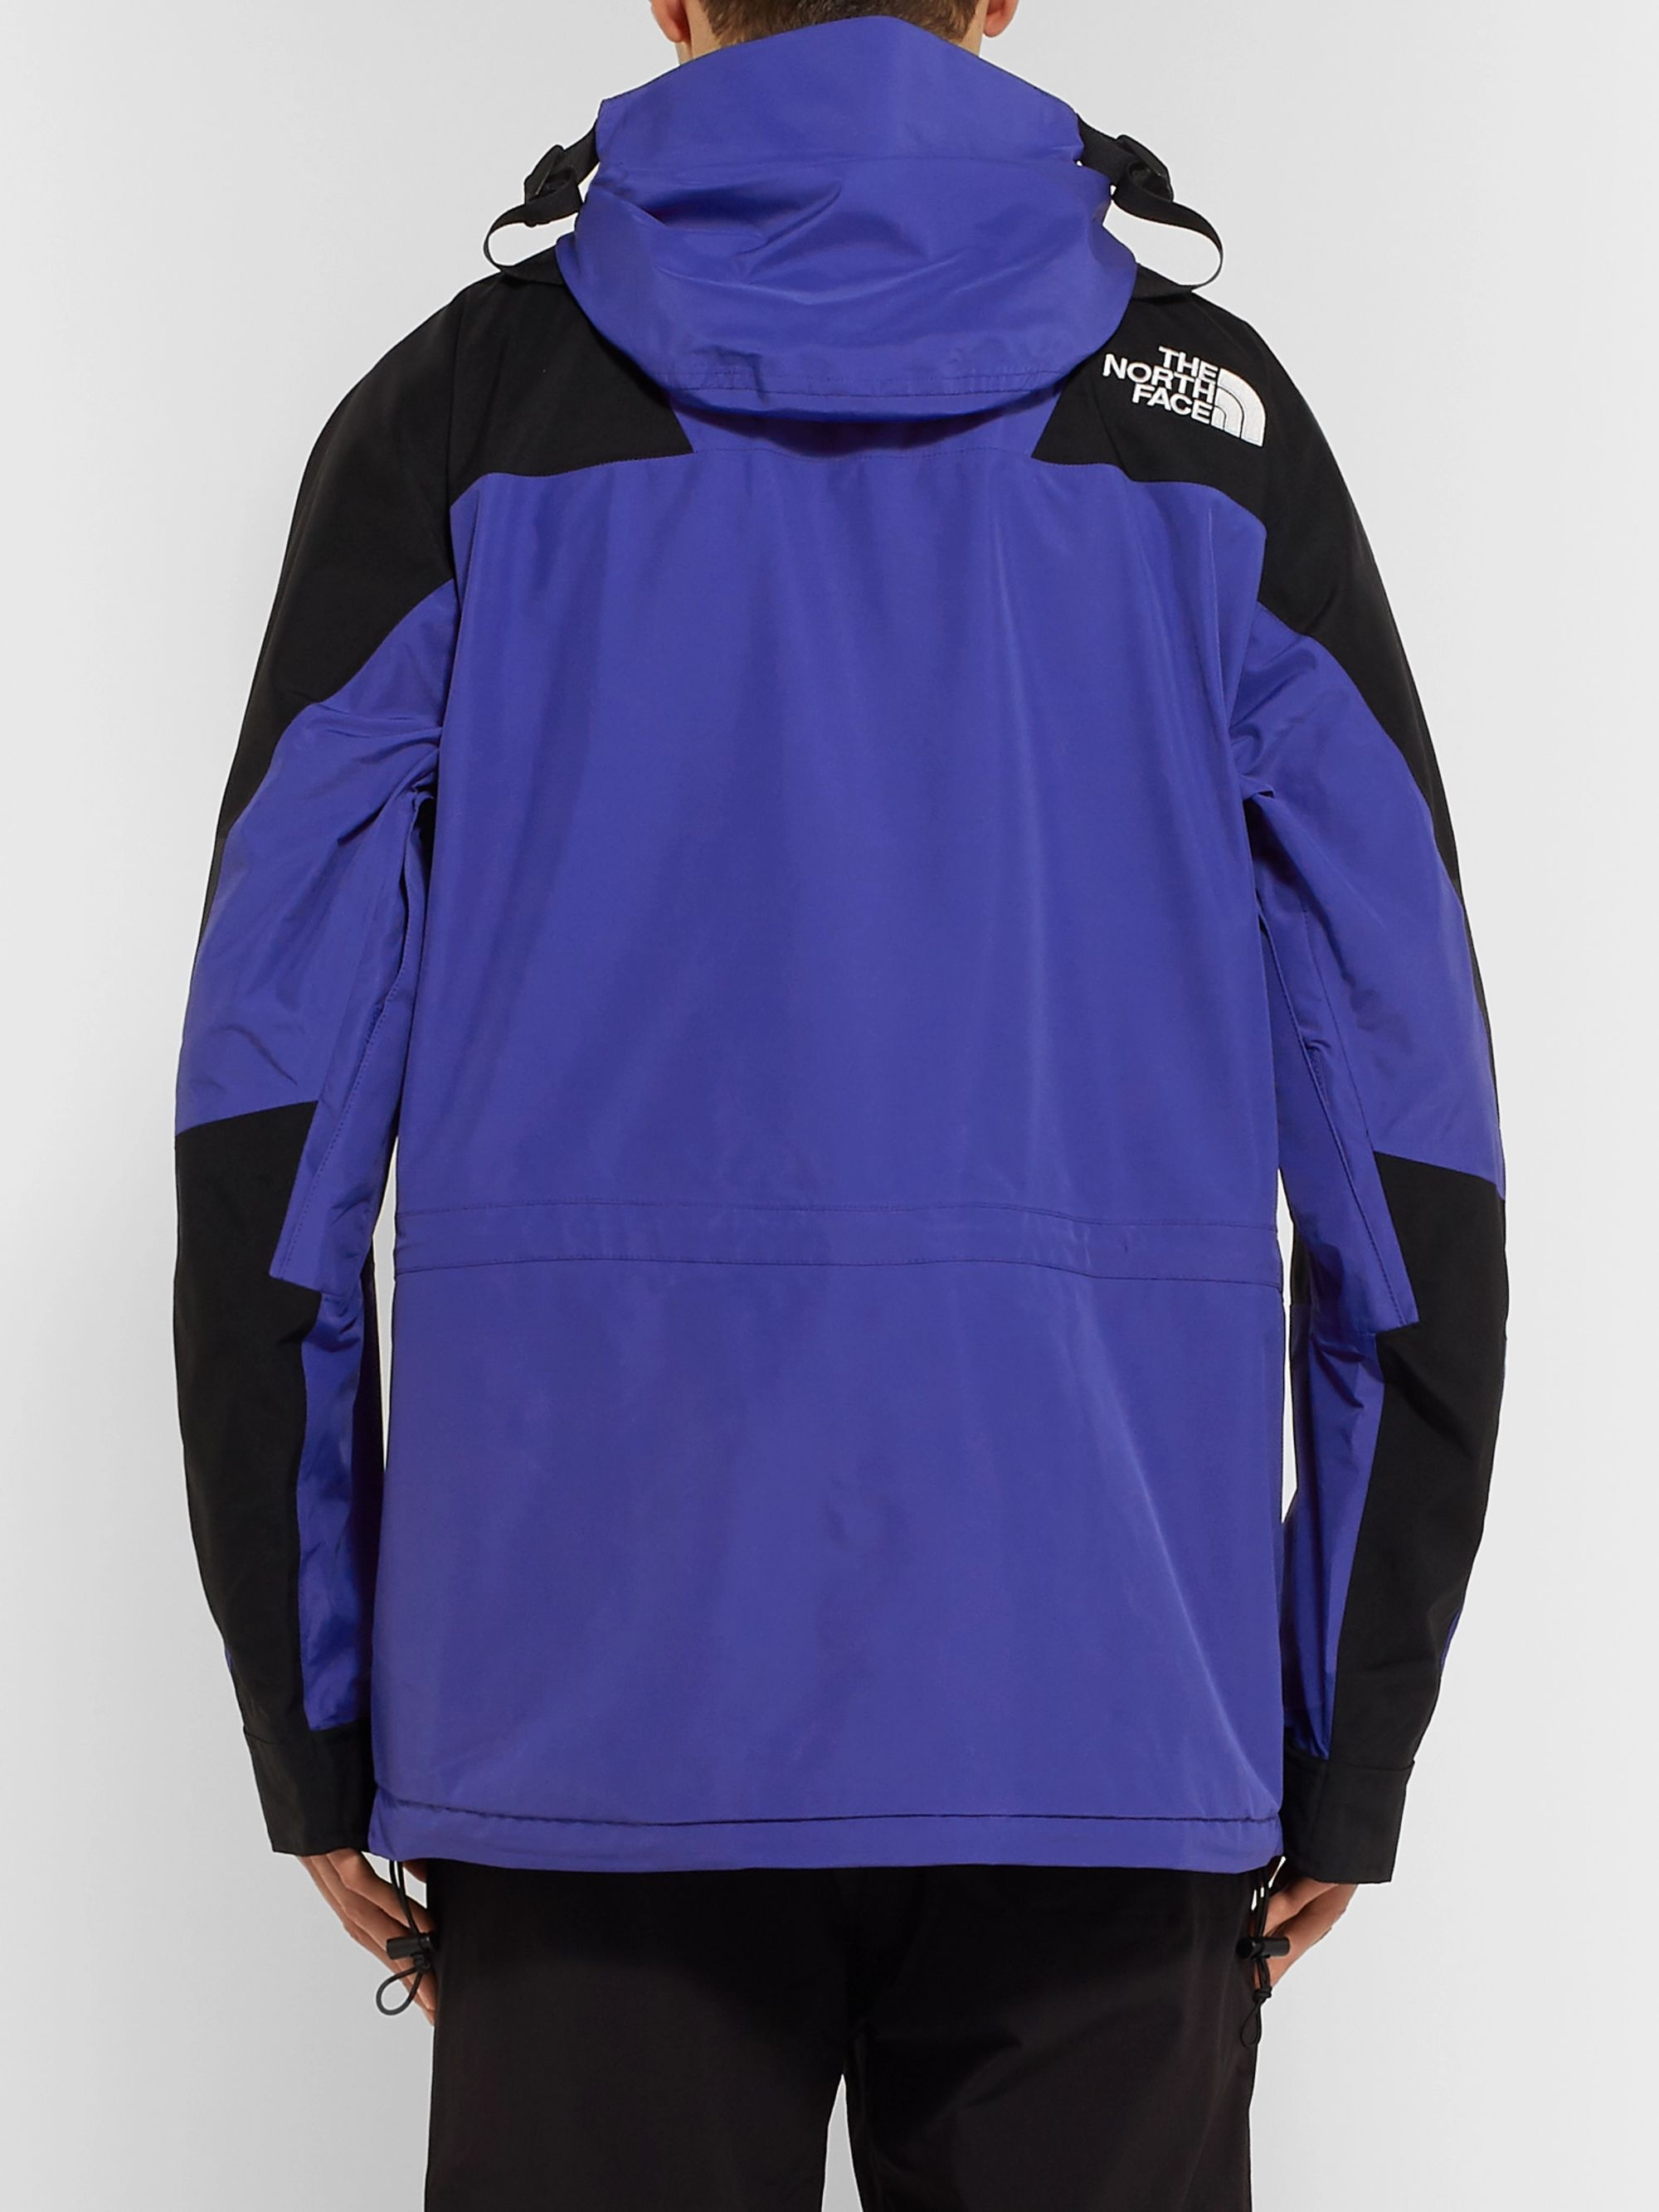 1994 Retro Mountain Light GORE TEX Hooded Jacket